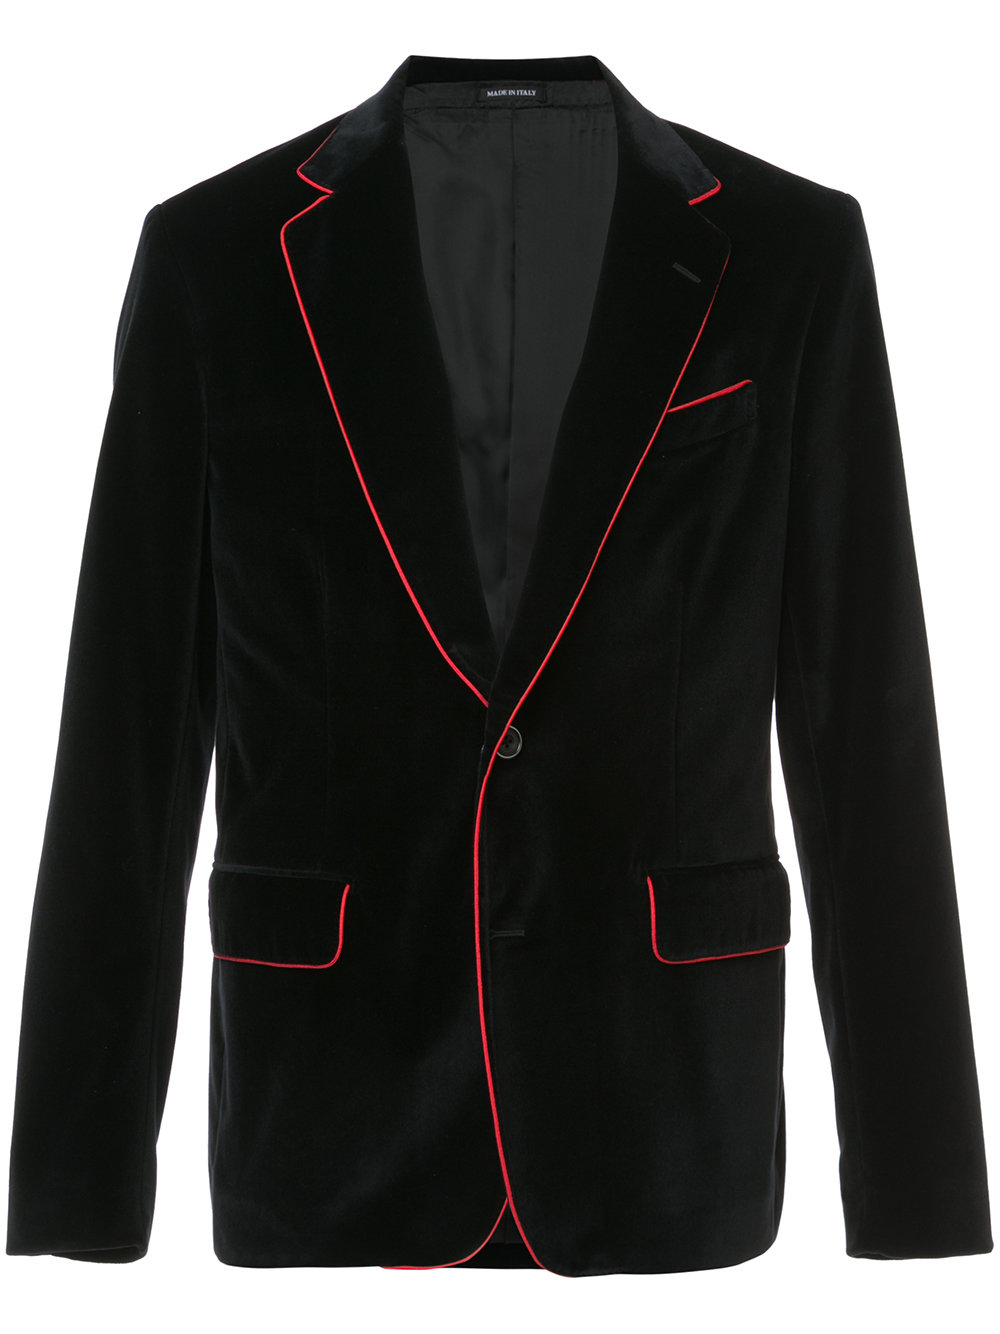 Alexander McQueen   Blazer With Red Contrasting Piping